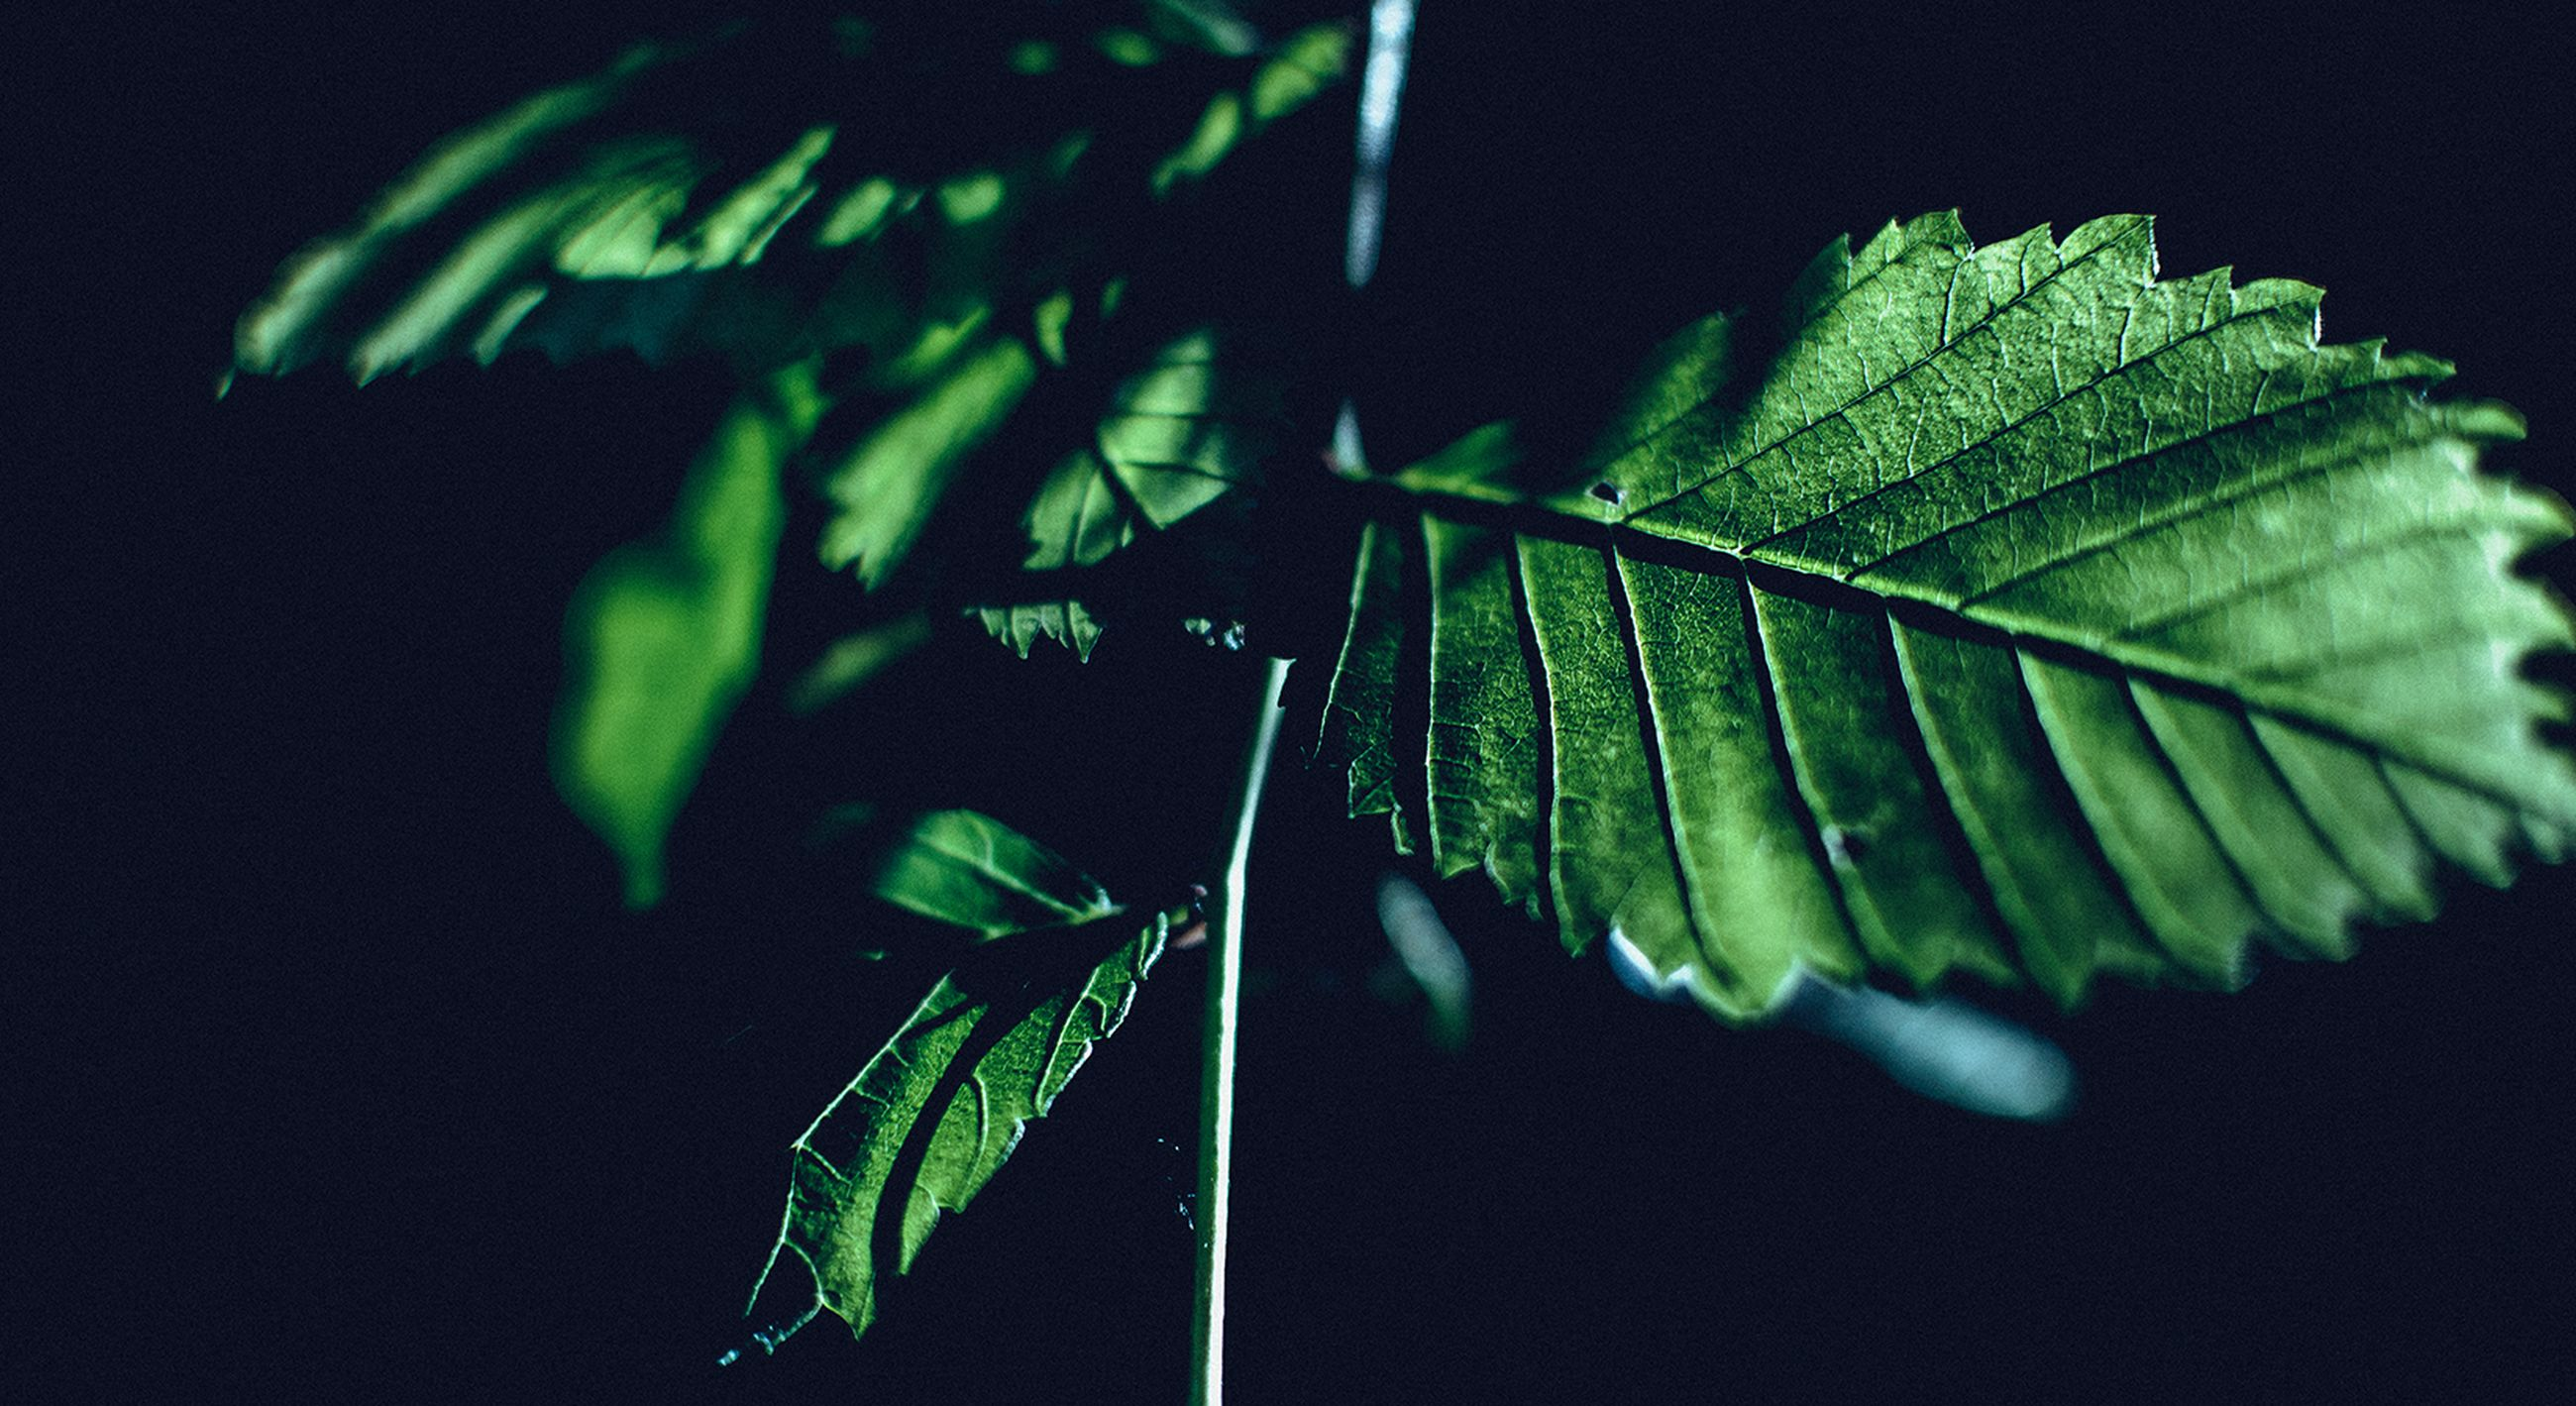 leaf, green color, close-up, leaf vein, focus on foreground, growth, plant, nature, studio shot, black background, leaves, beauty in nature, selective focus, night, natural pattern, green, stem, no people, outdoors